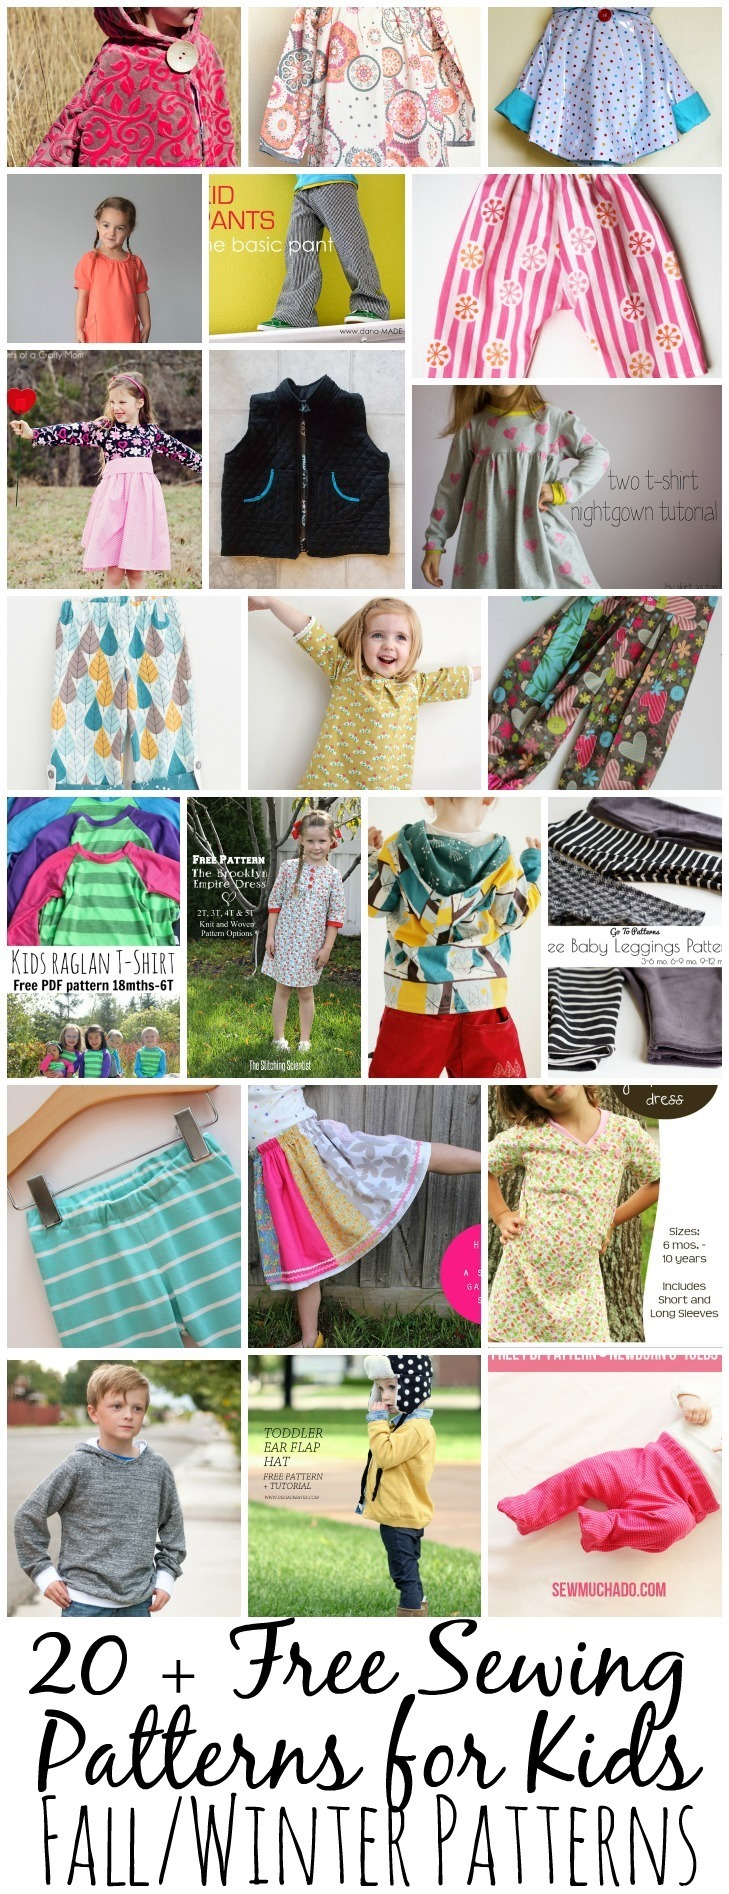 Free Sewing Patterns for Kids Fall – Winter